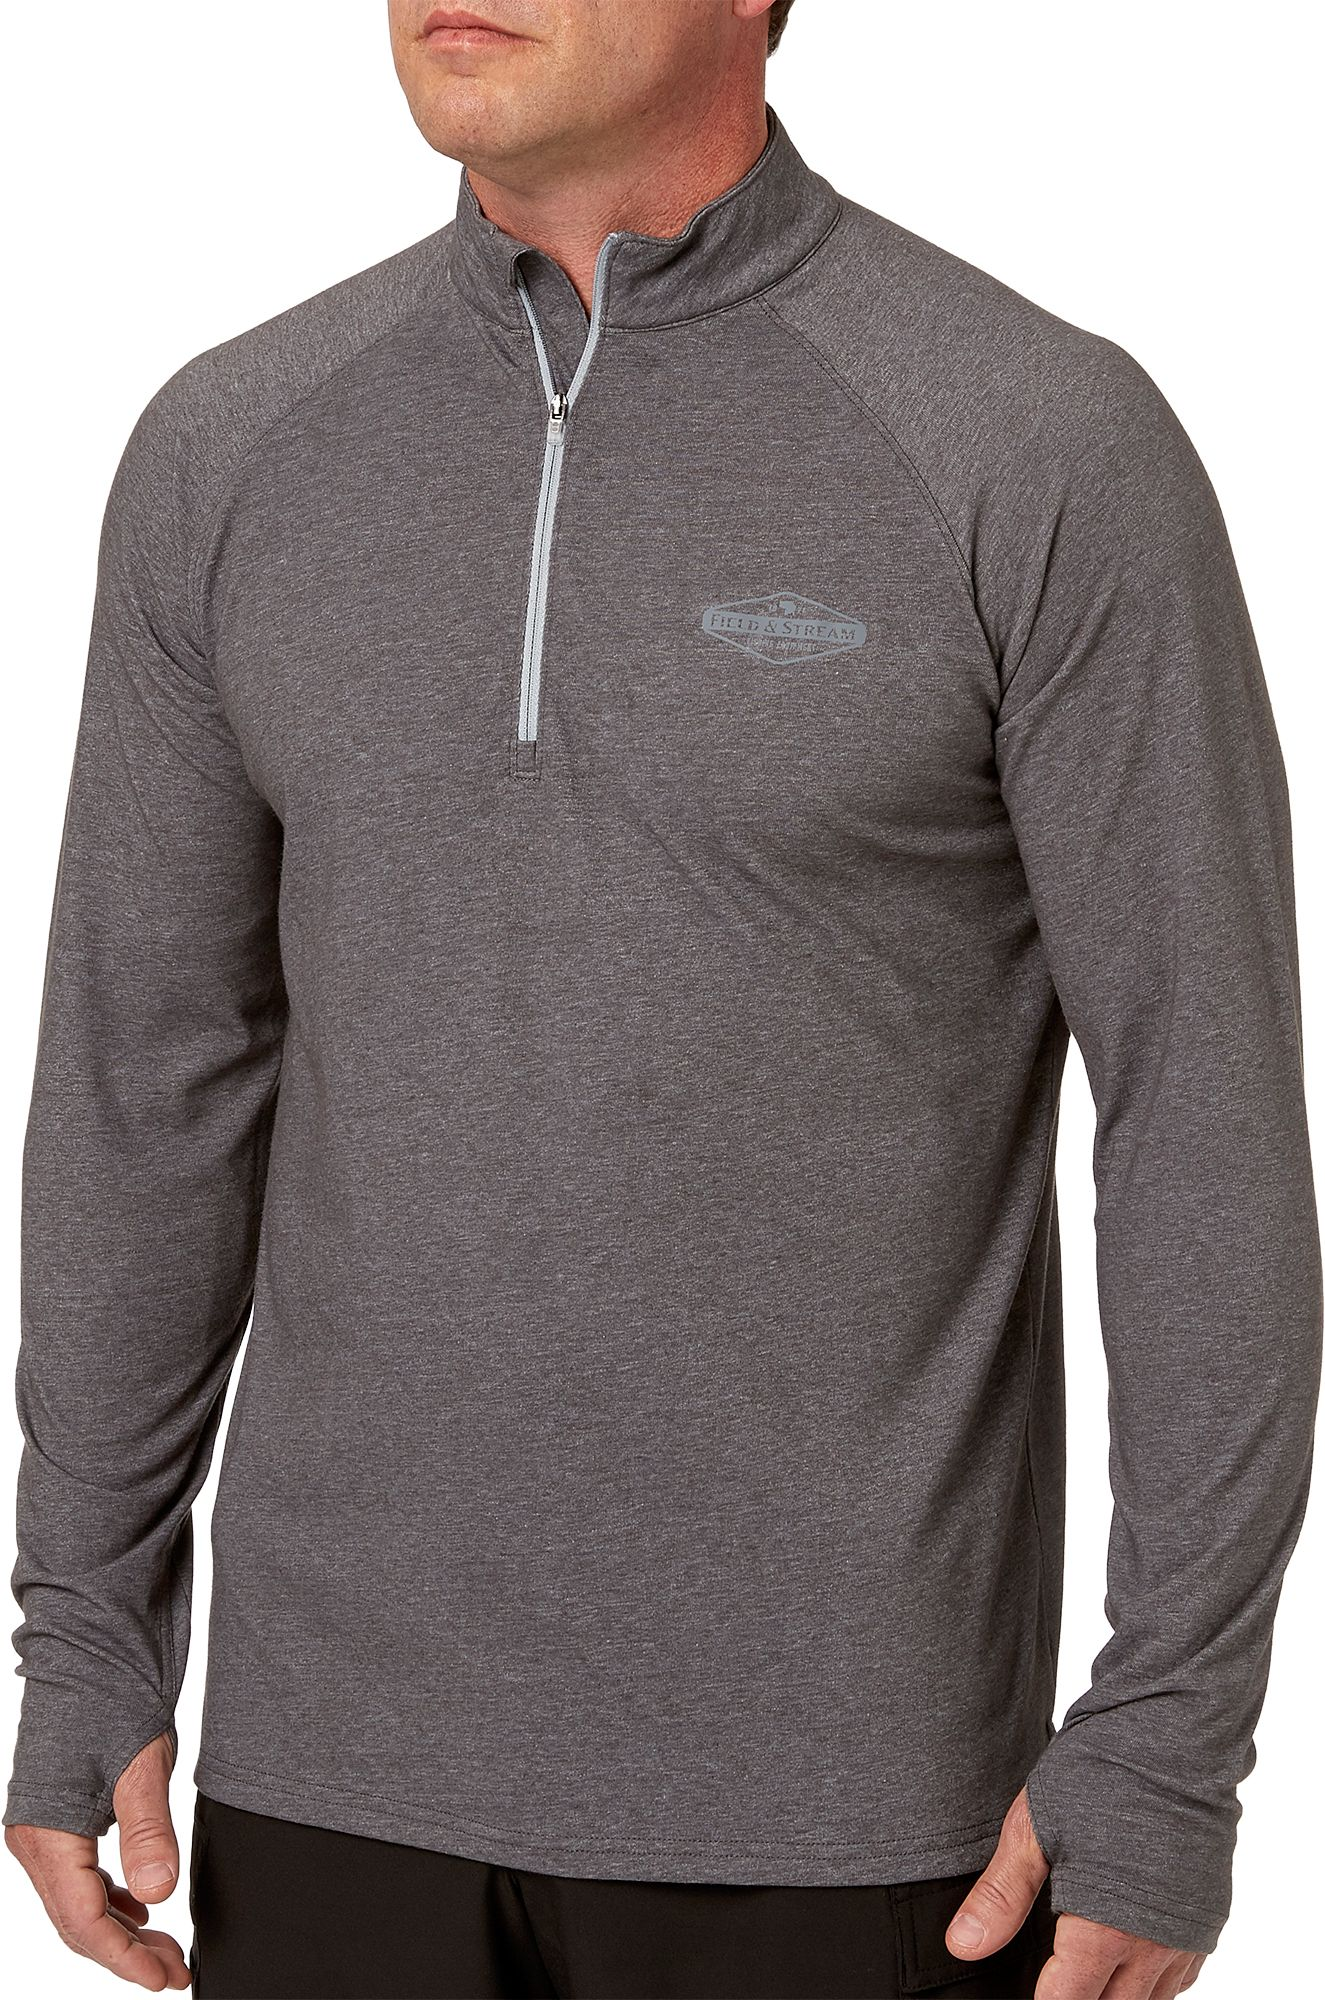 By Hanes Adult Beefy-T Long-Sleeve T-Shirt/_Charcoal Heather/_L